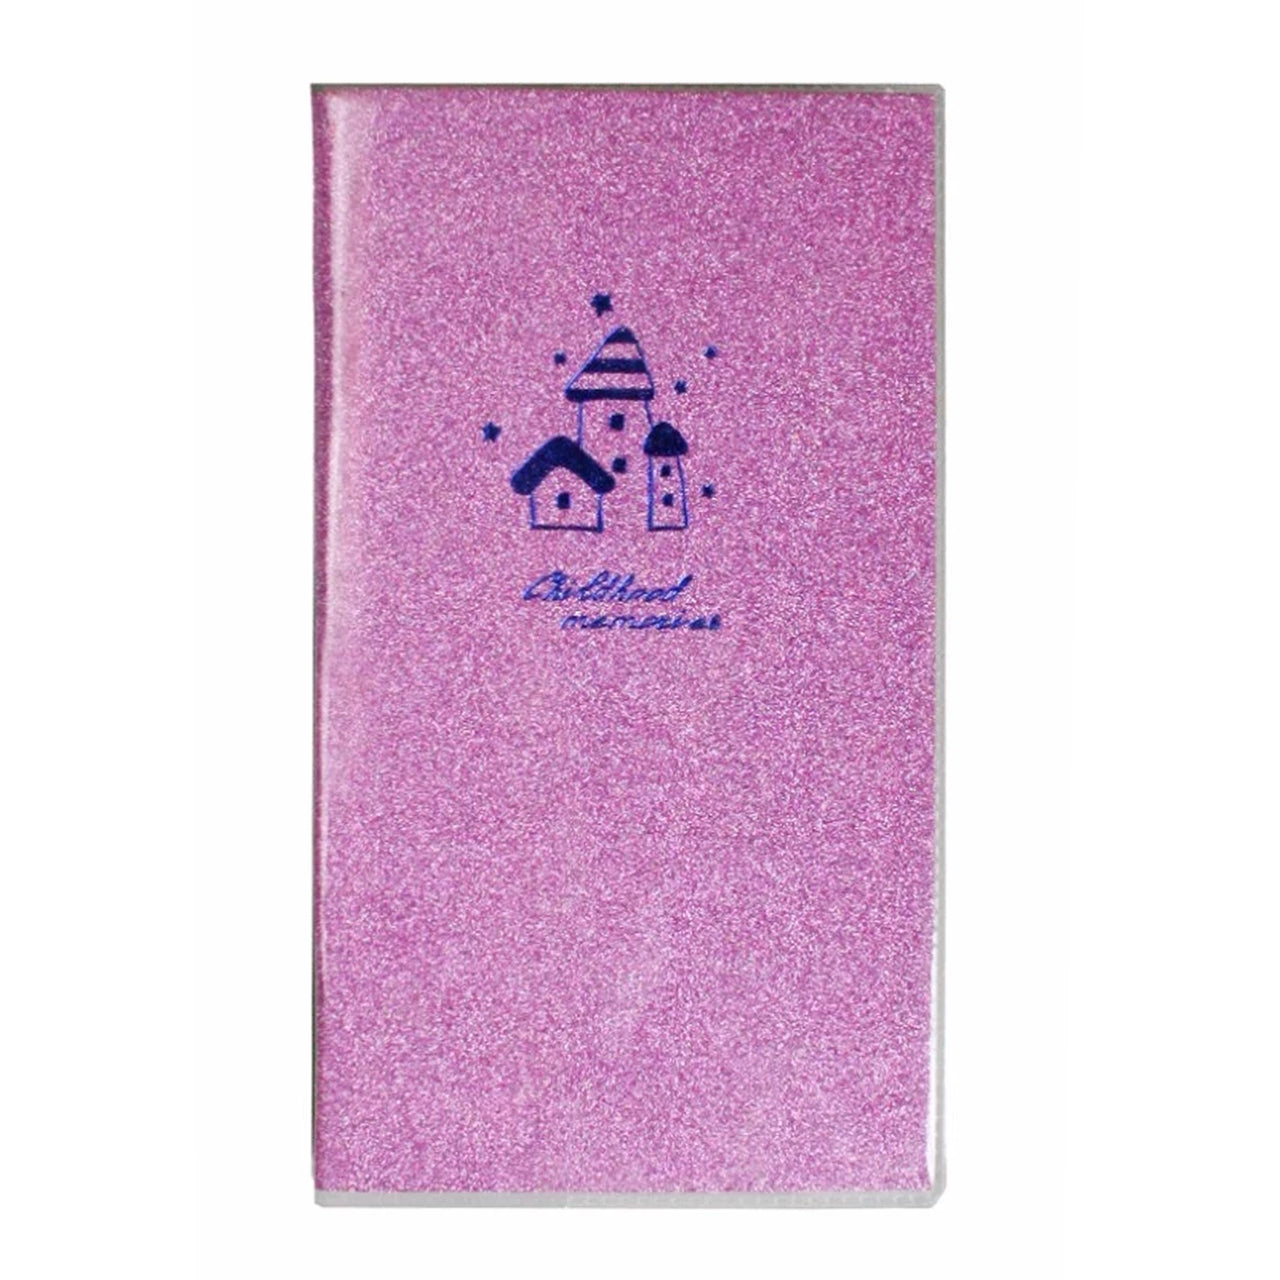 Pink Glitter Pocket Size Lined Notebook